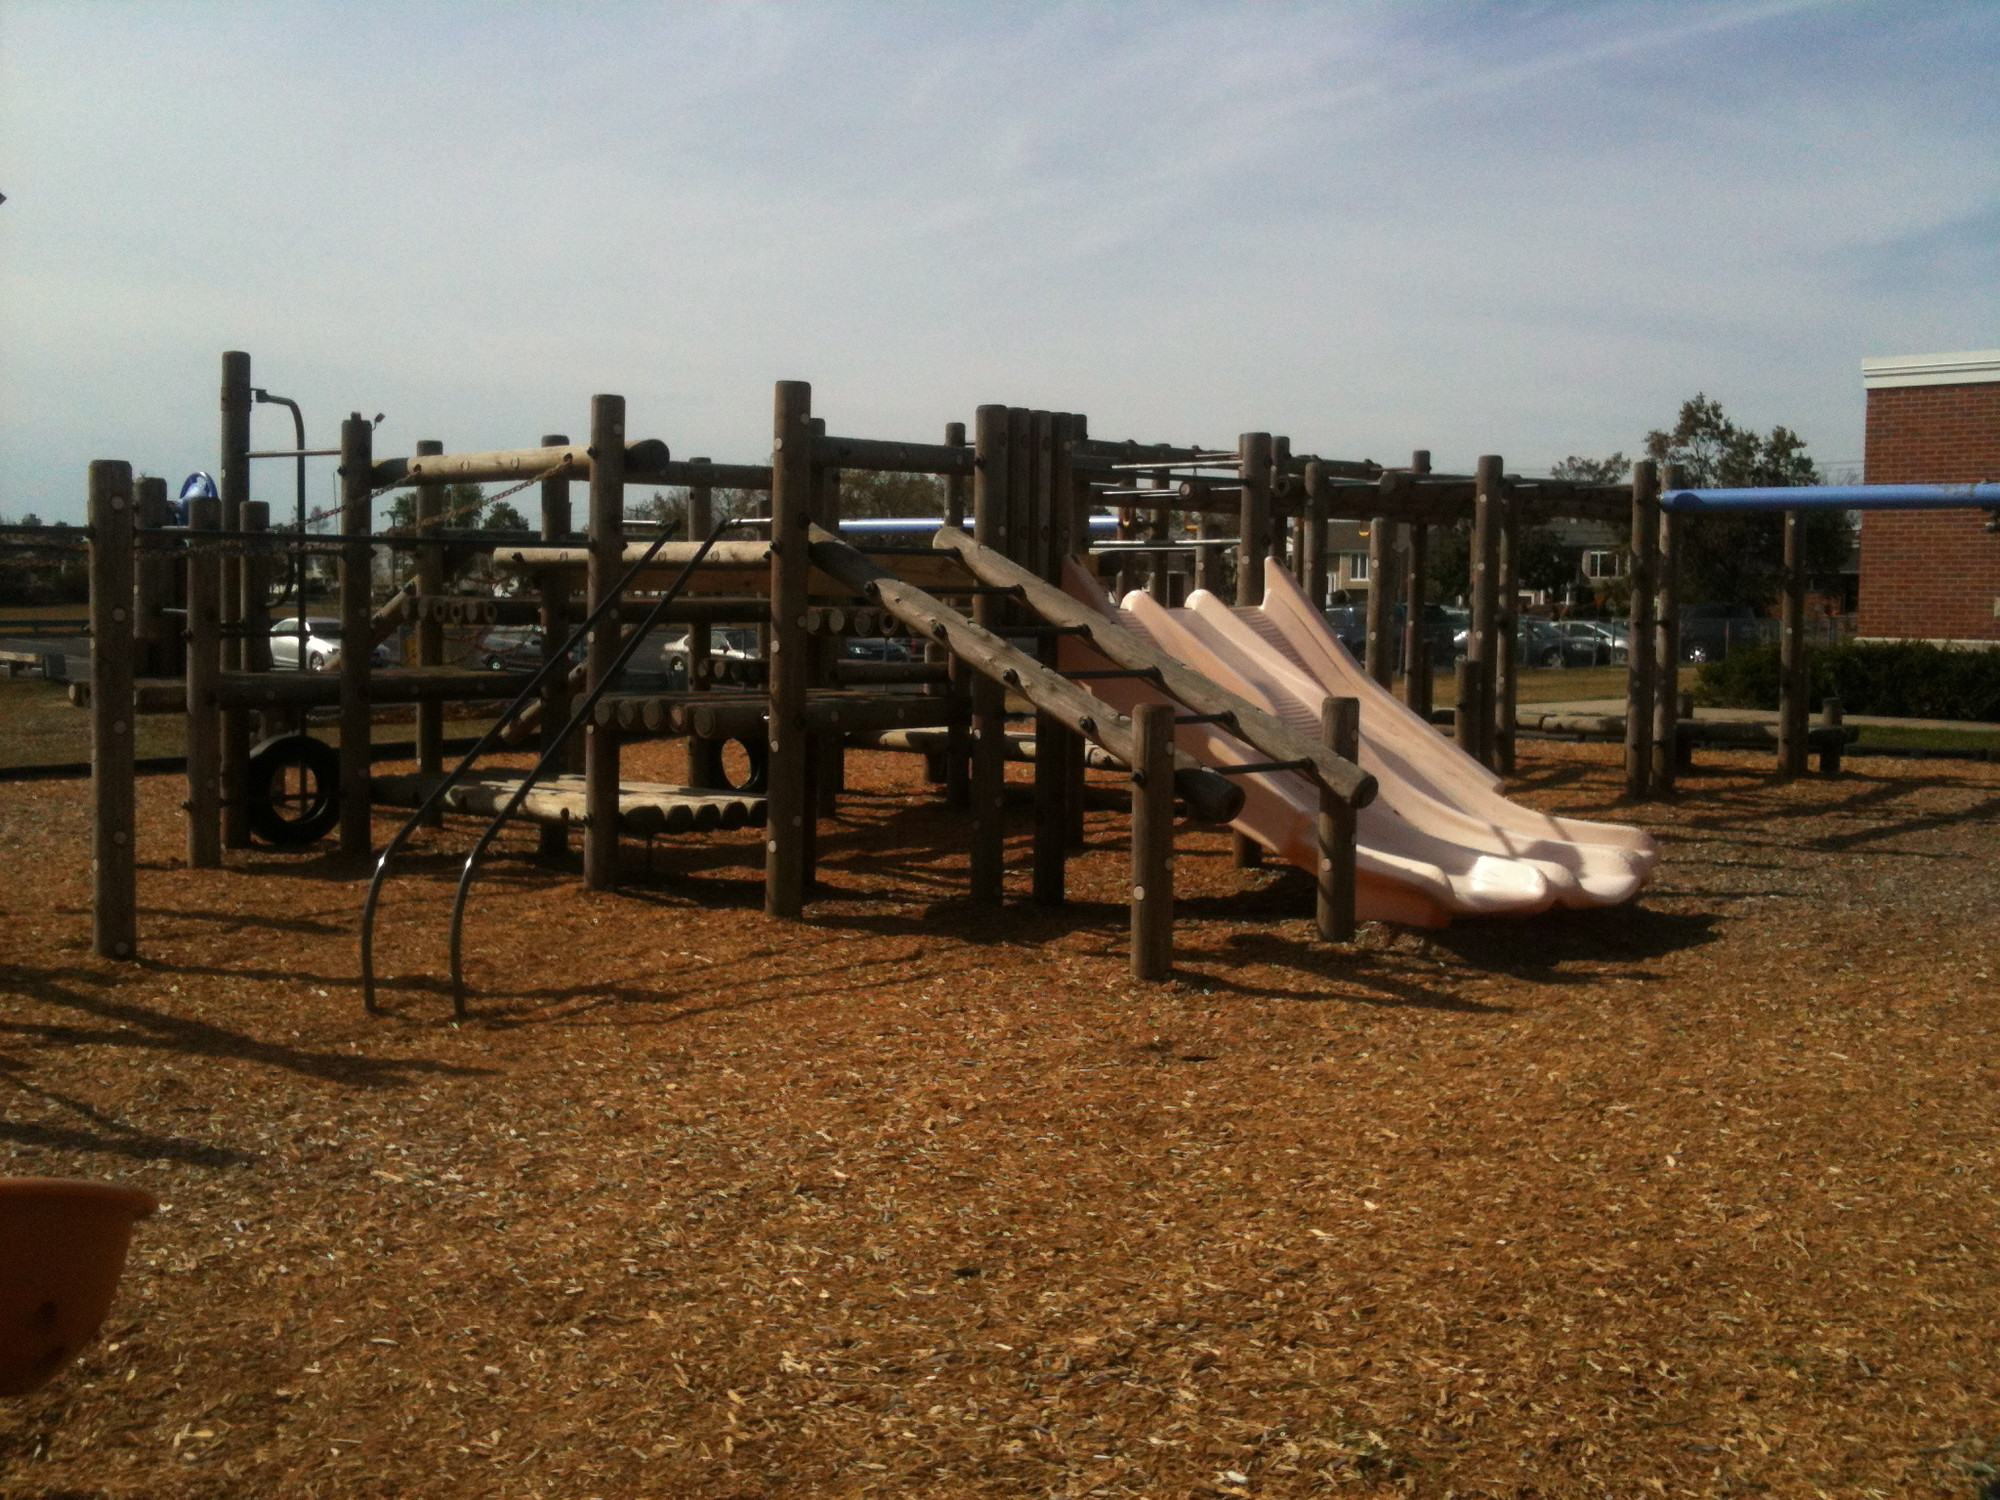 BIG TOY WAITS FOR A FACELIFT: The Mandalay Playground committee would like to see a new playground by next summer. The playground committee includes Sharon George, Dorin Stein Max Russo, Mark Salerno and Heather Mondell.